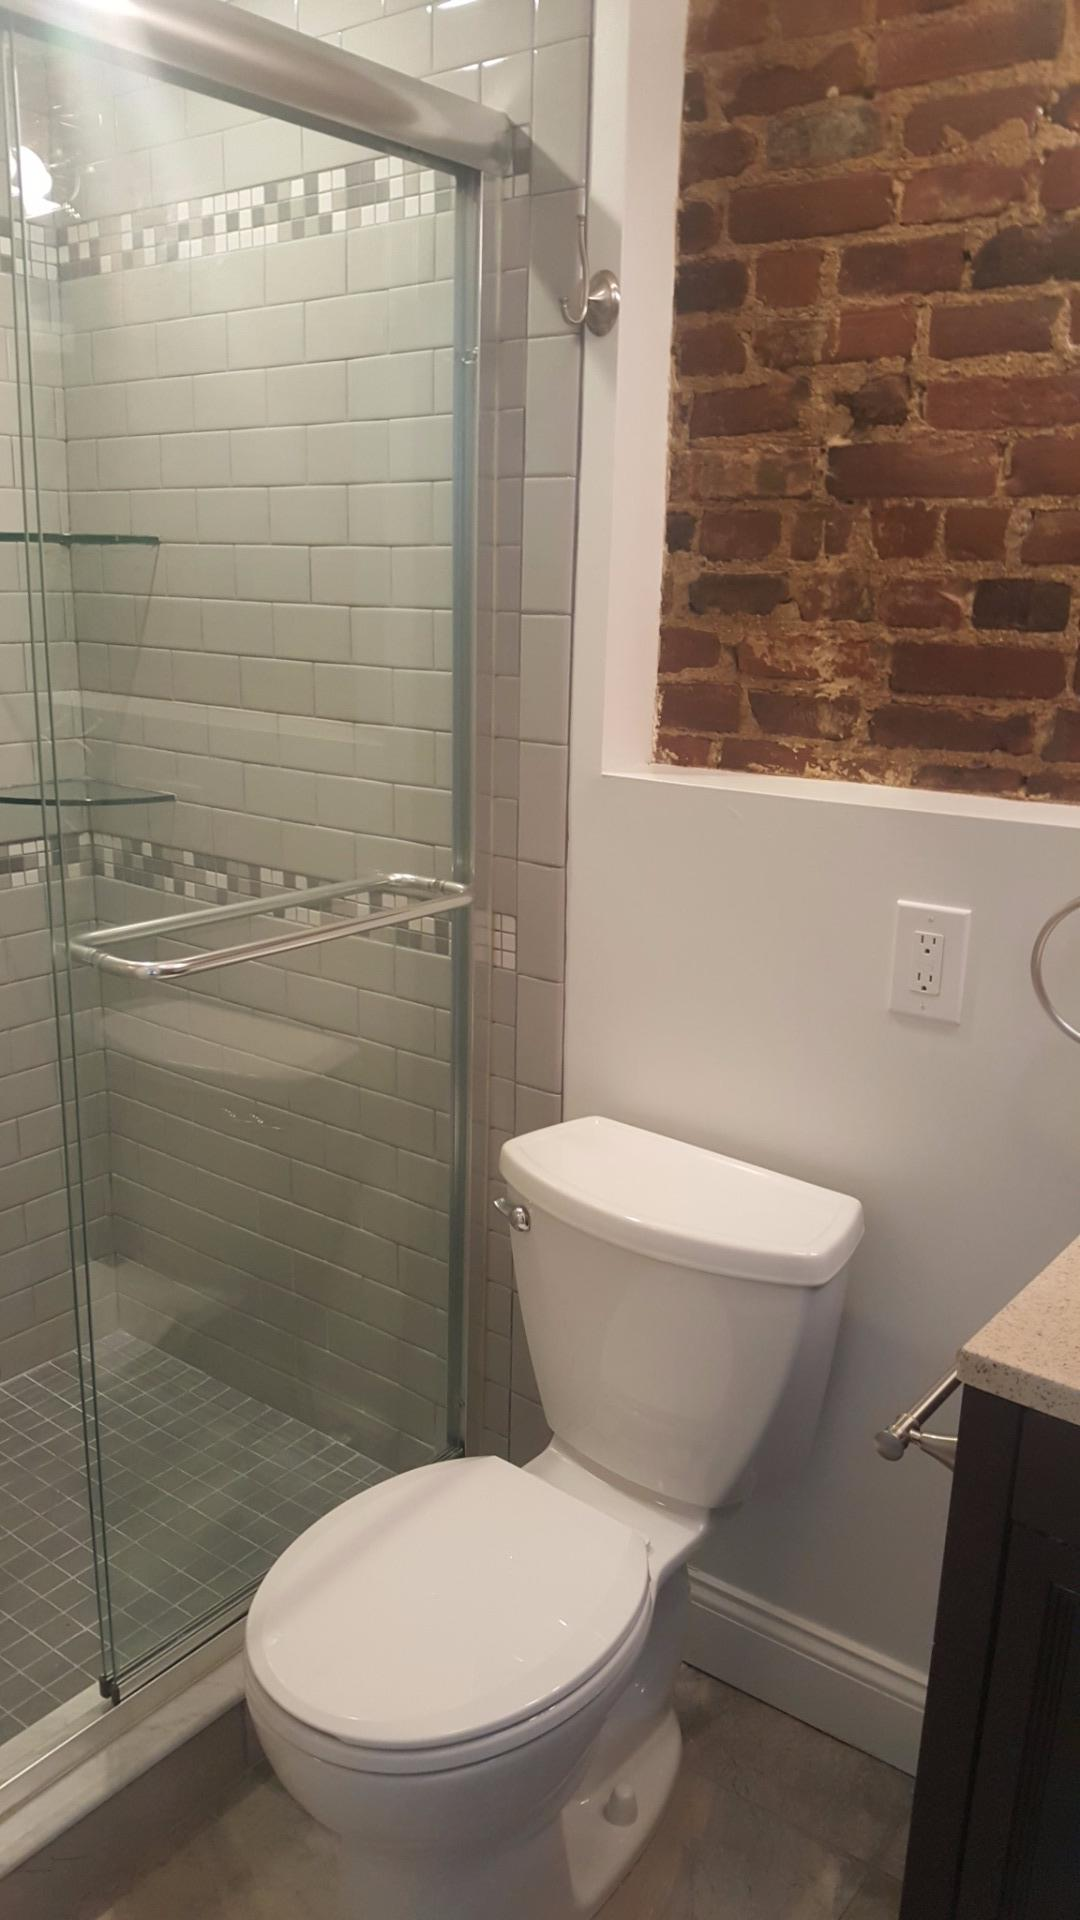 GUT-RENOVATED! GRANITE/STAINLESS! LAUNDRY IN UNIT! PORCH!